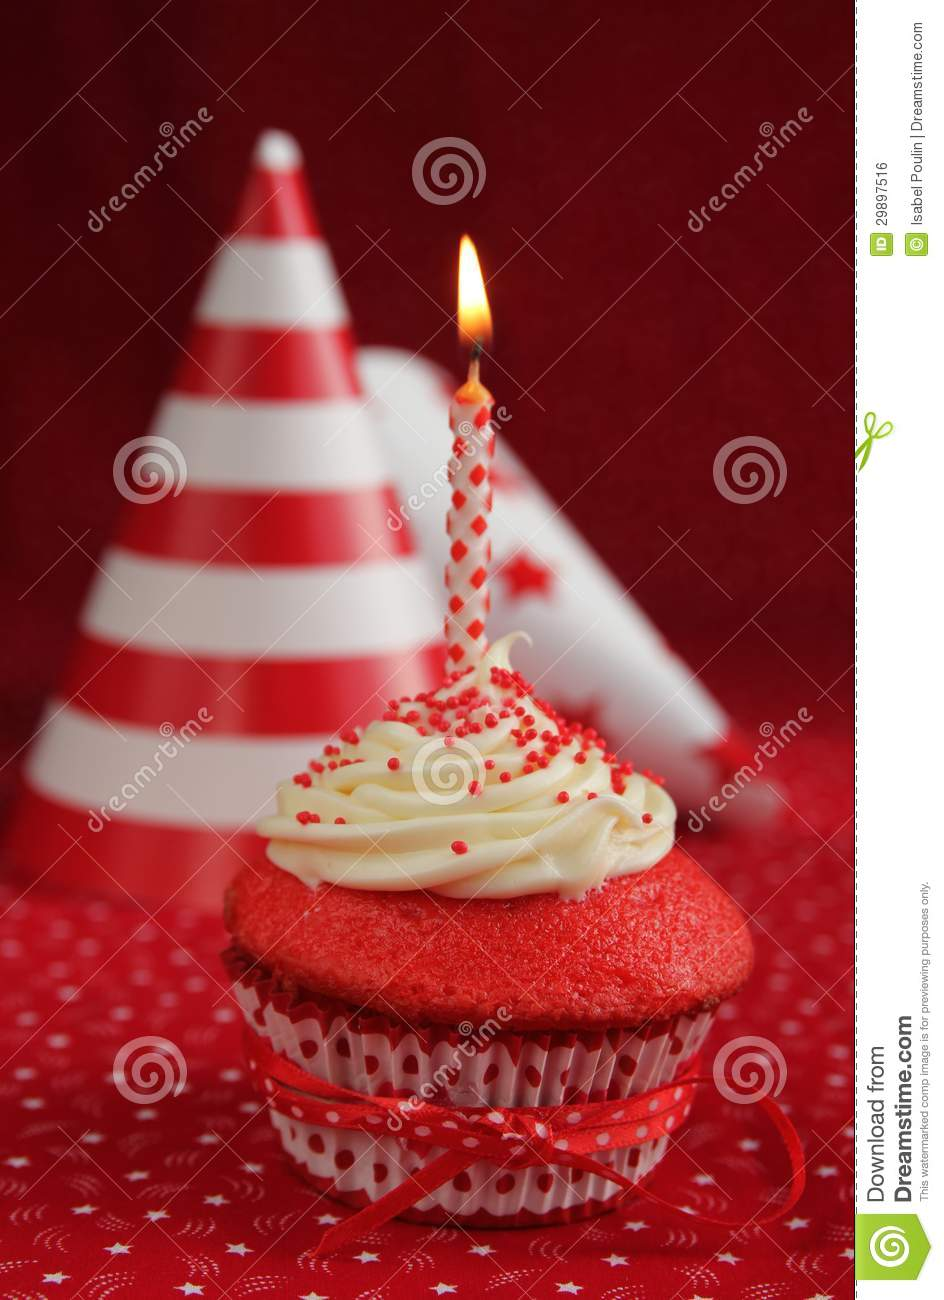 Birthday Red Velvet Cupcake Royalty Free Stock Image